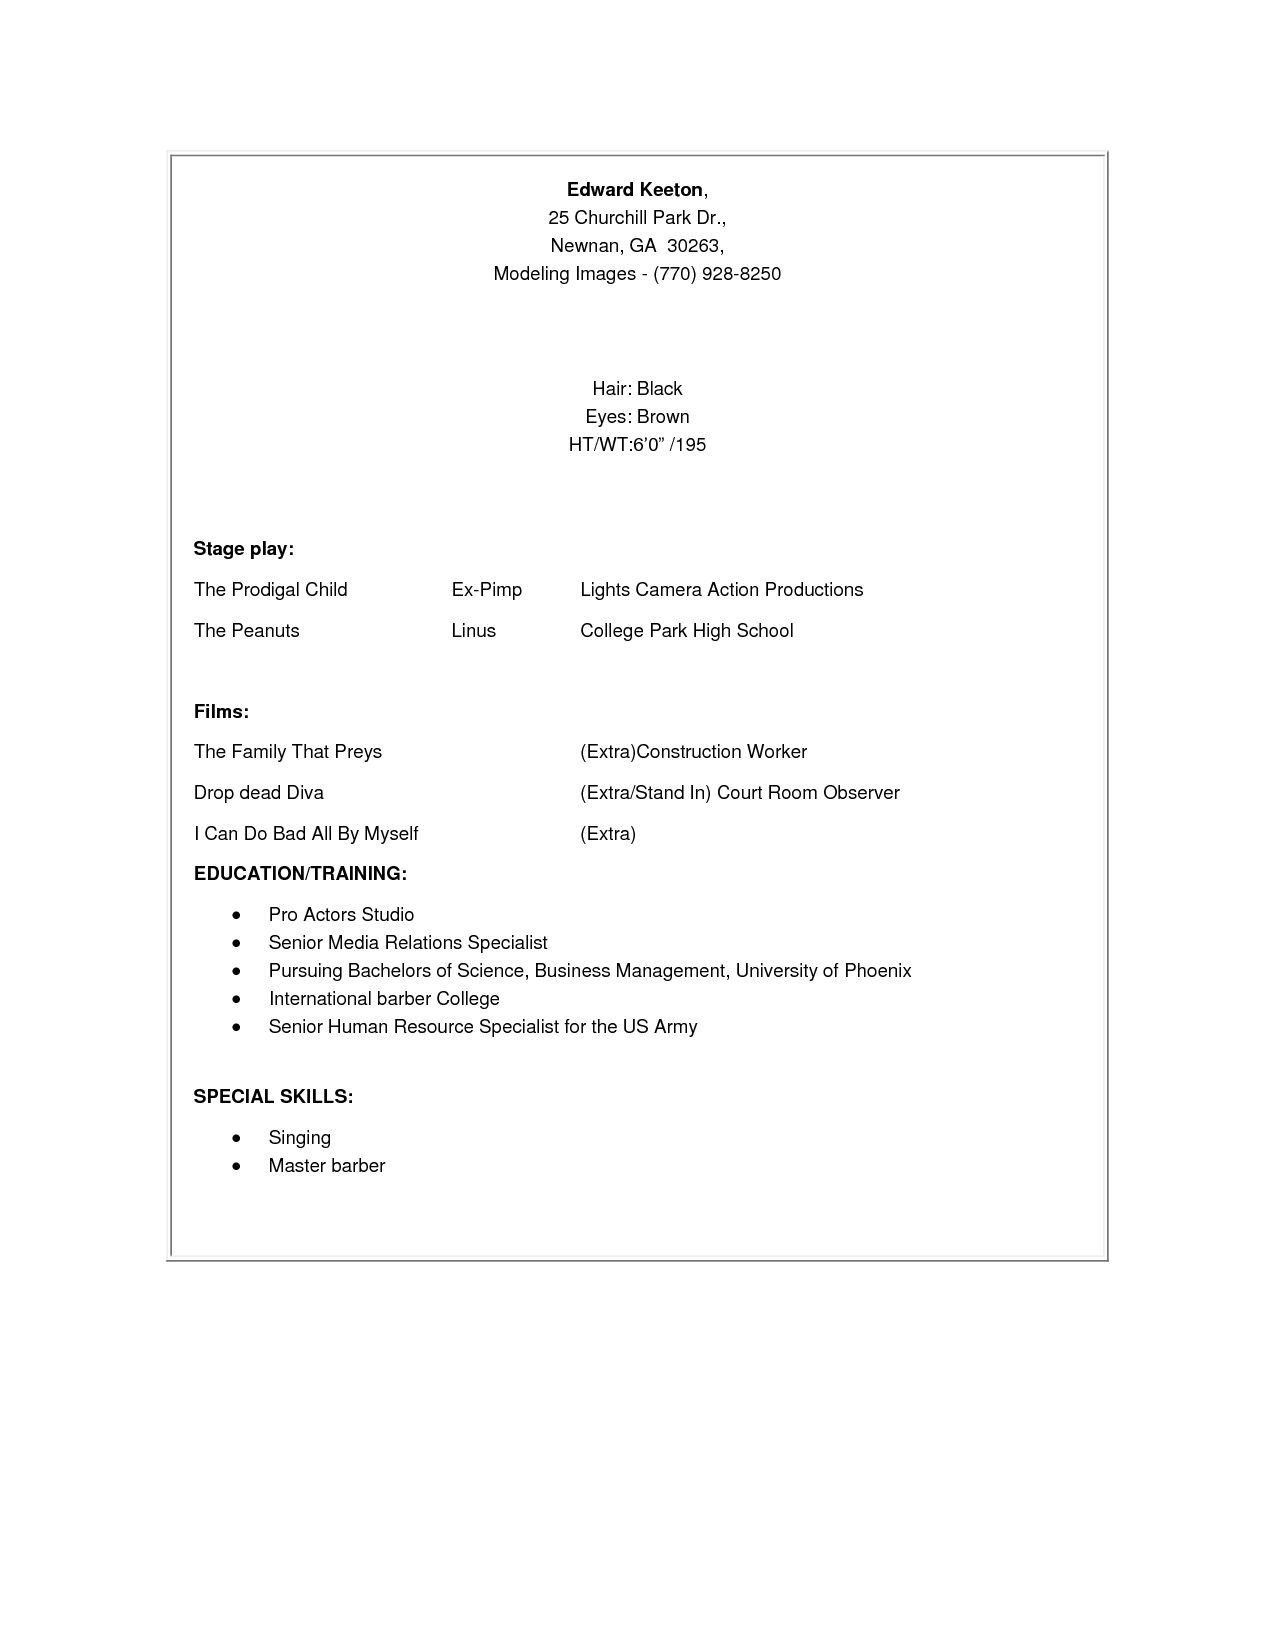 Resume Templates For Beginners Best Modeling Resume Sample Beginners  Gallery   Best Resume .  Modeling Resume Template